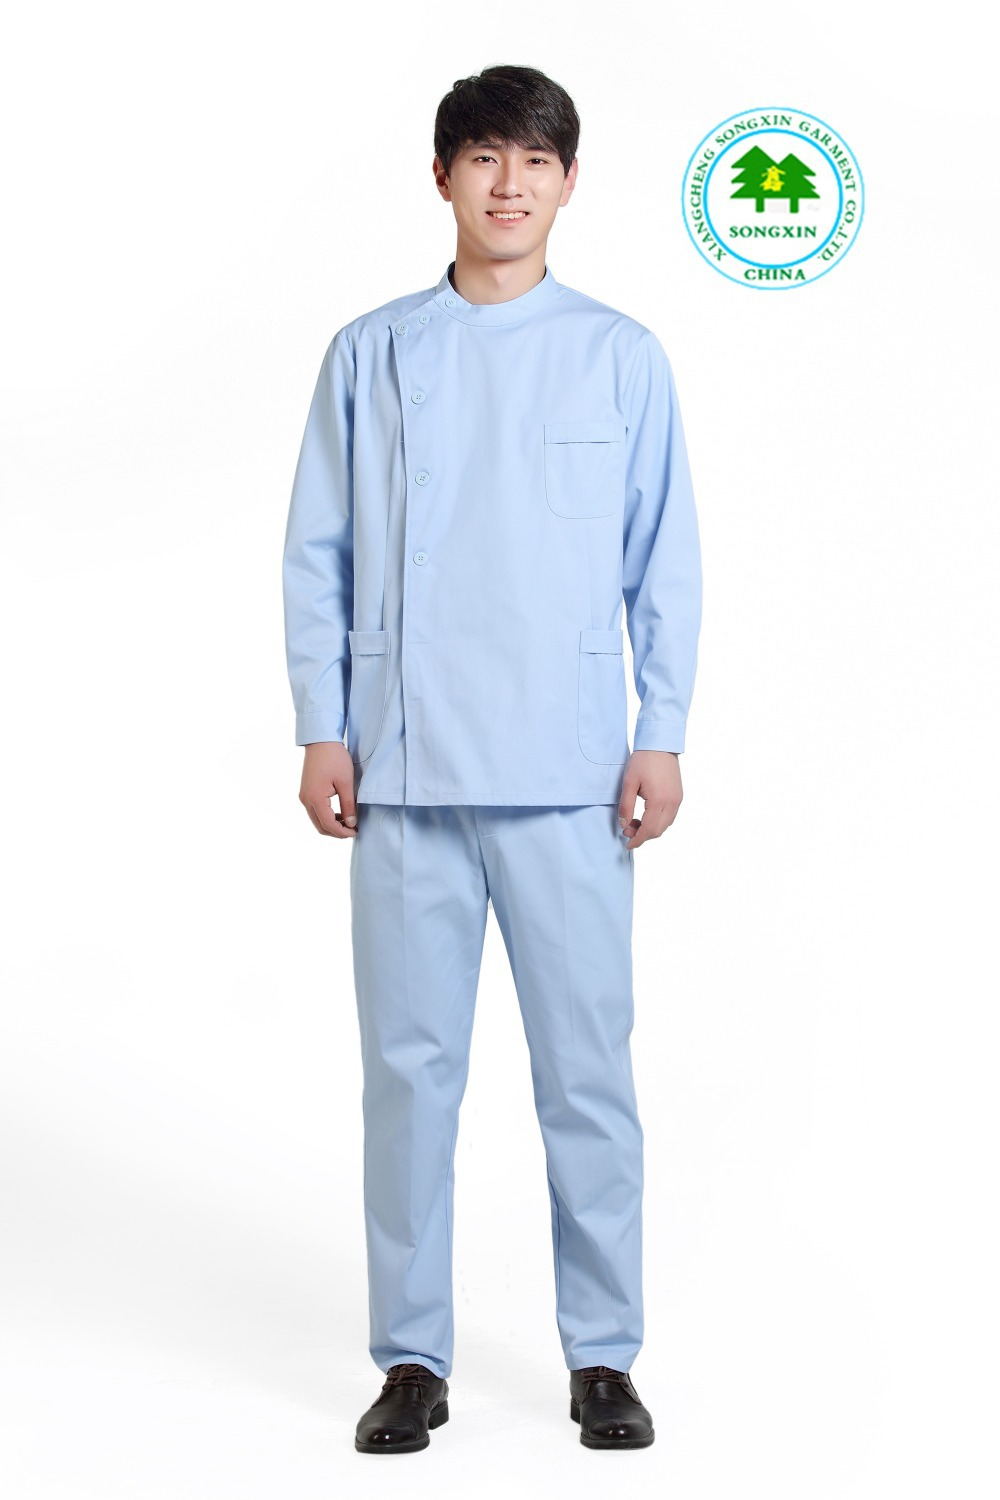 Dress up your medical wardrobe with Sanibel Scrubs! Professional scrubs with stylish colors and pockets. Shop Sanibel Scrubs at The Uniform Outlet!